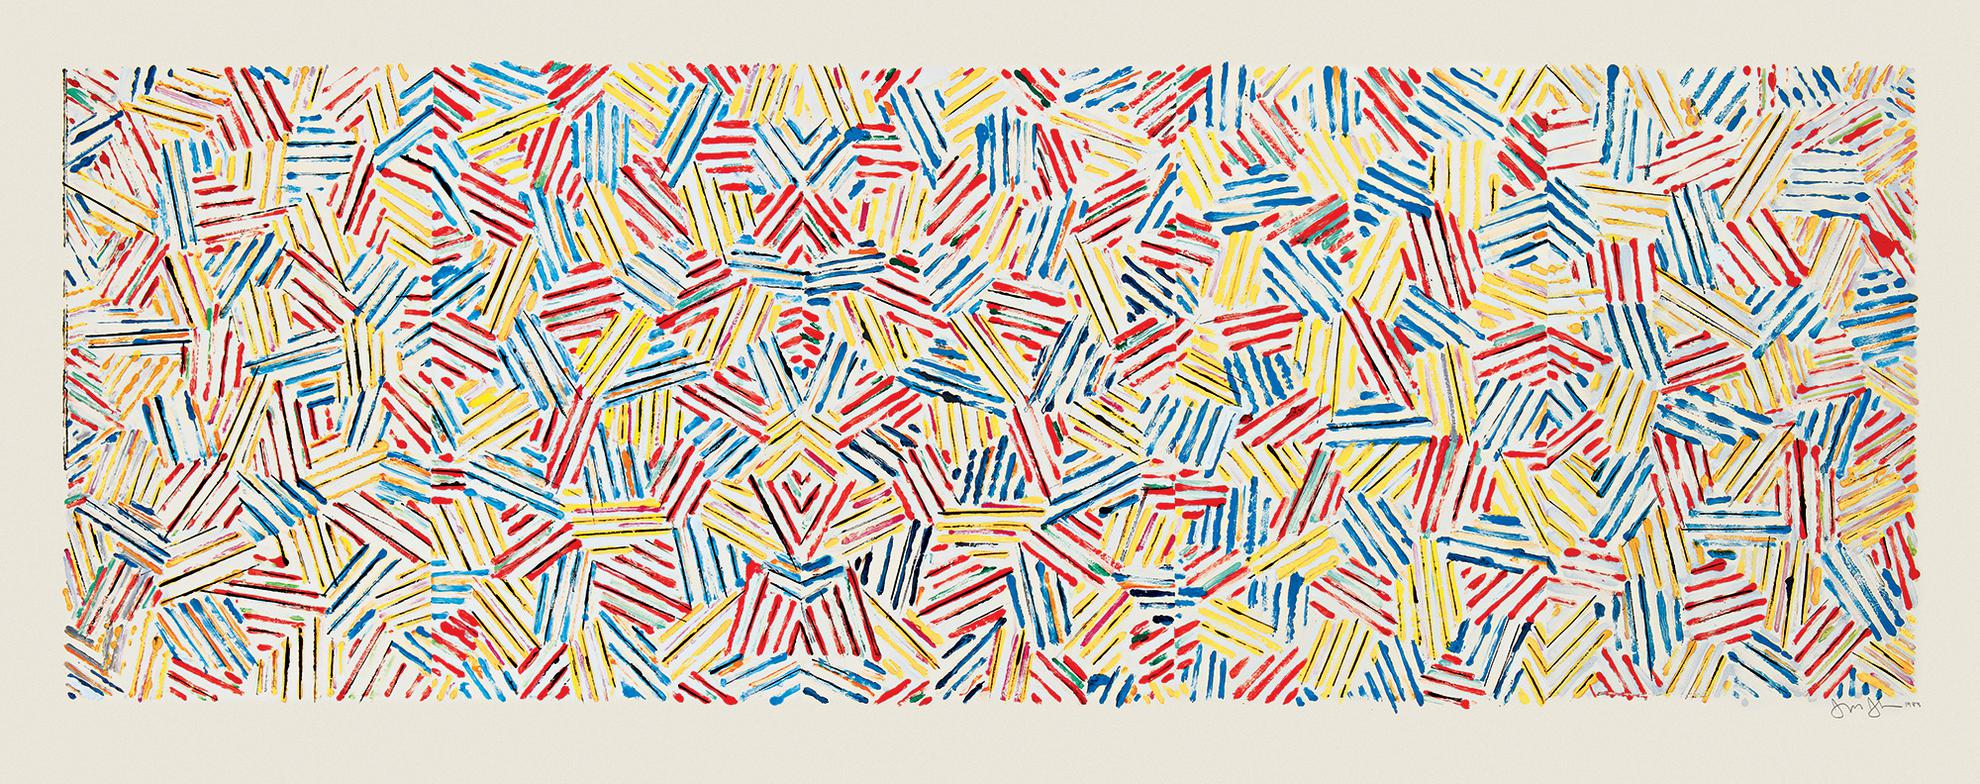 Jasper Johns-Untitled-1983